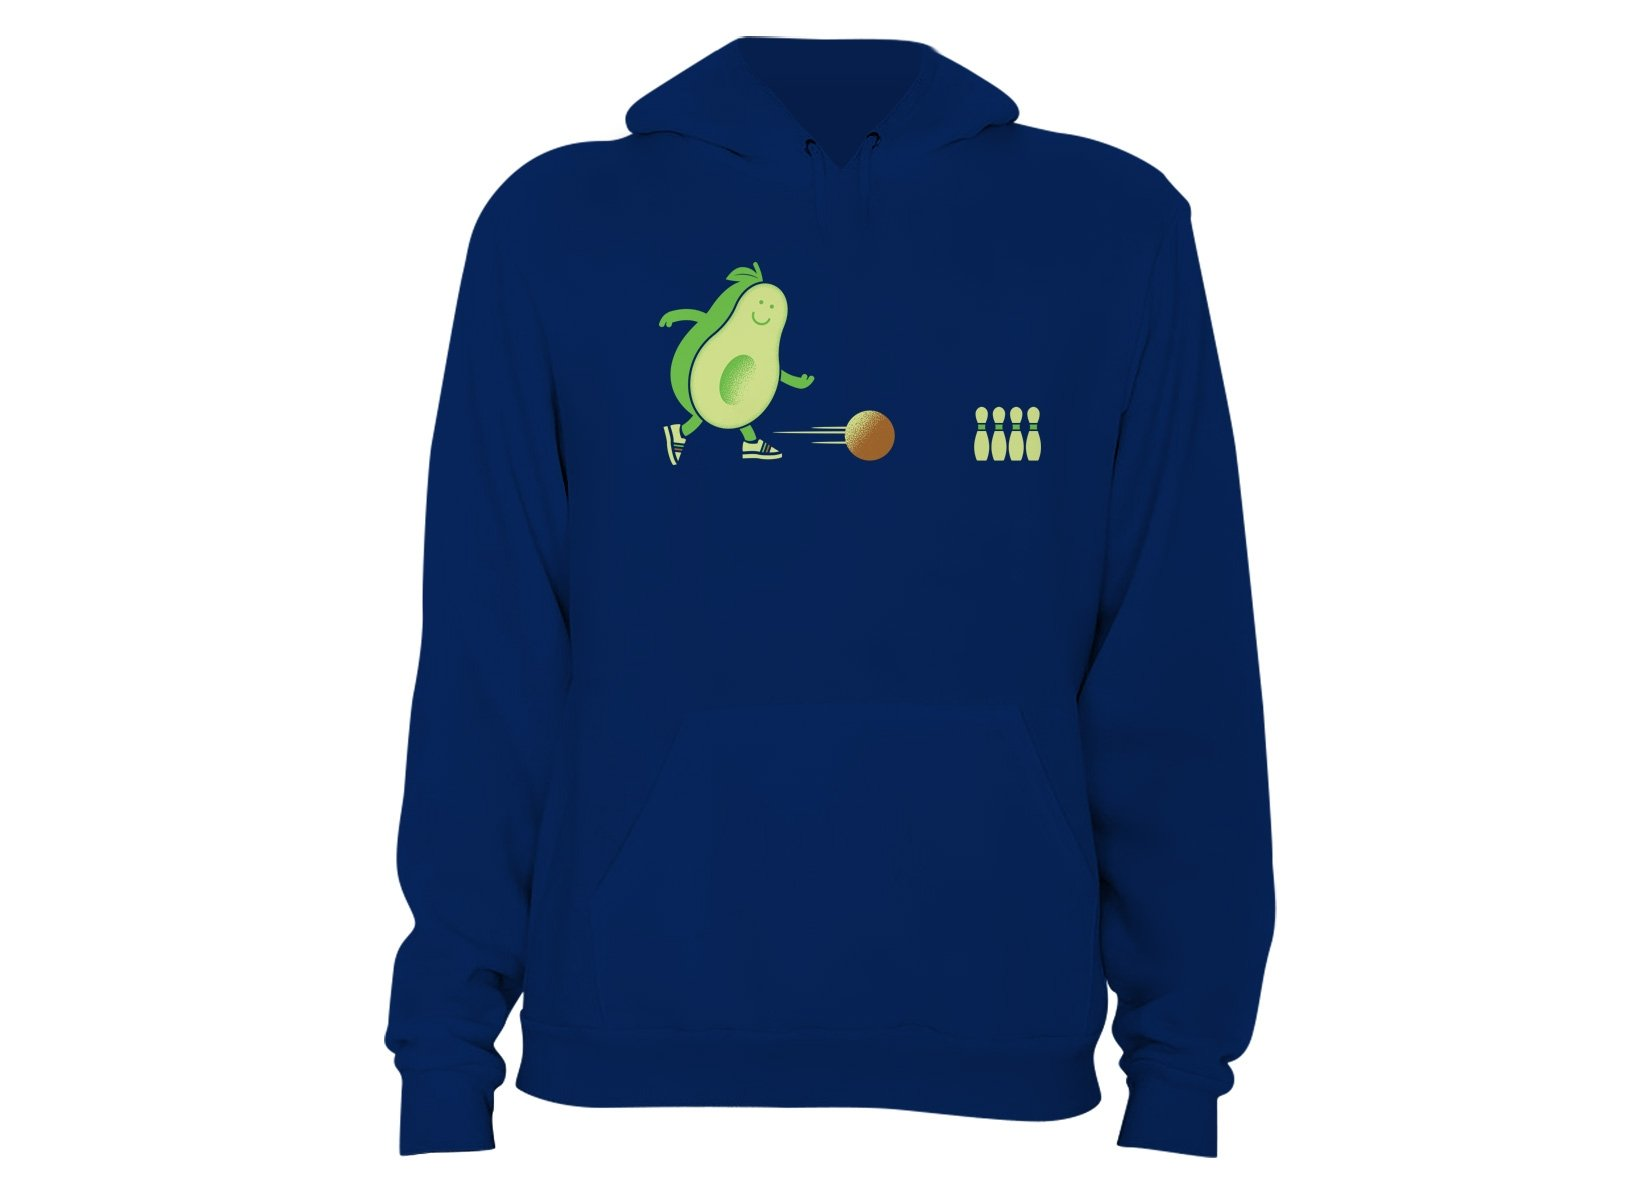 Avocado Bowl on Hoodie